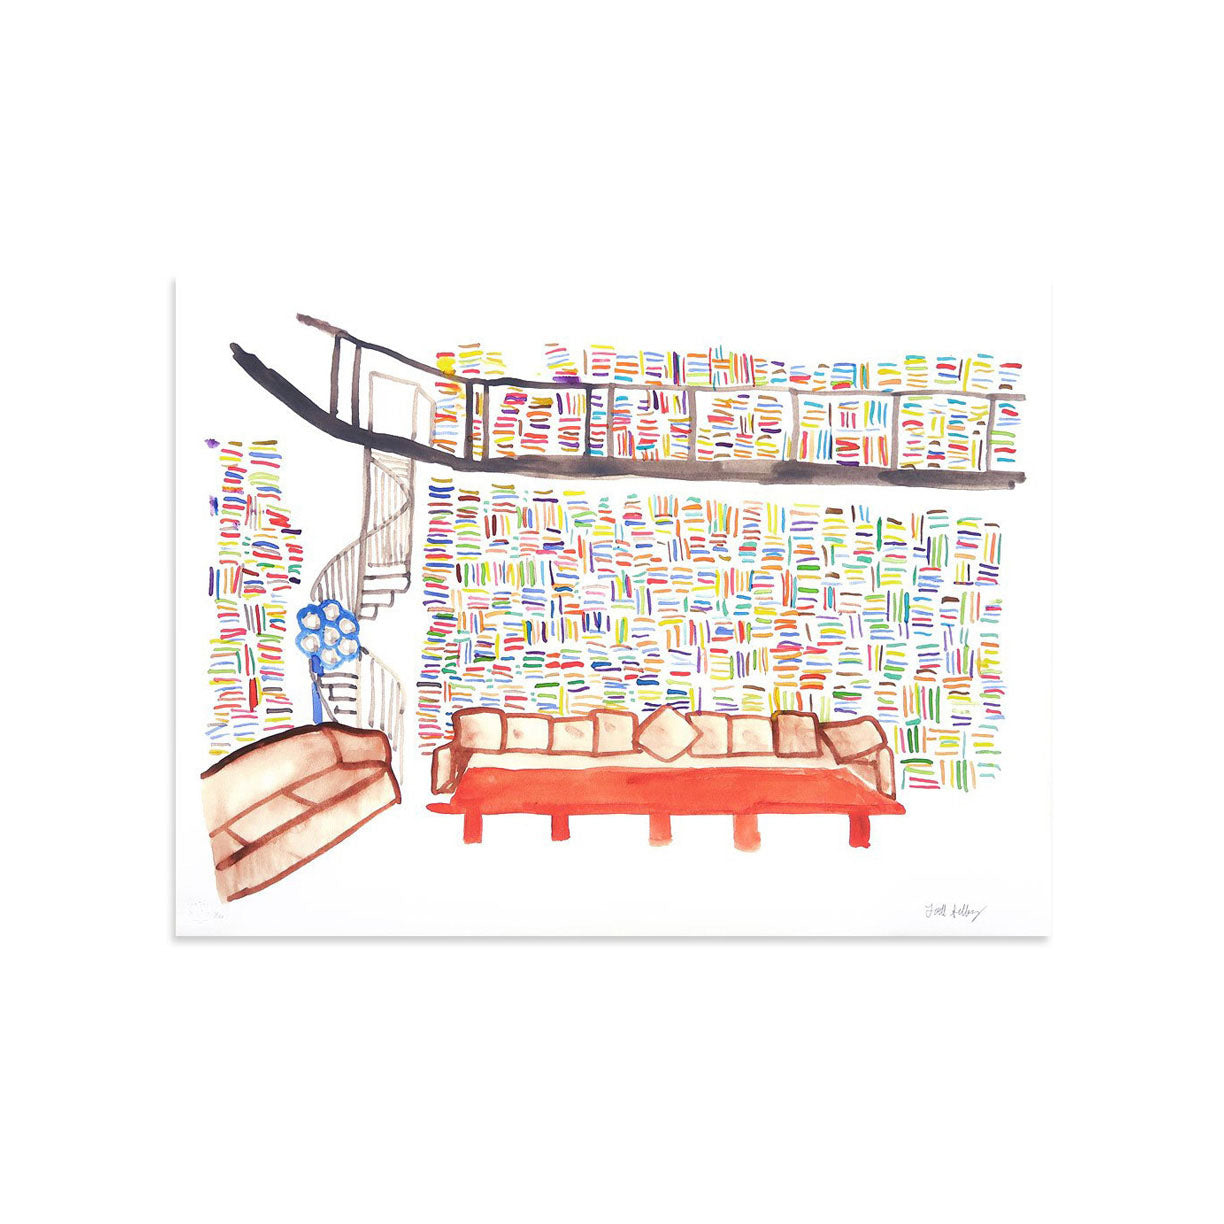 Lagerfeld's Library by Todd Selby | Print | Poster Child Prints